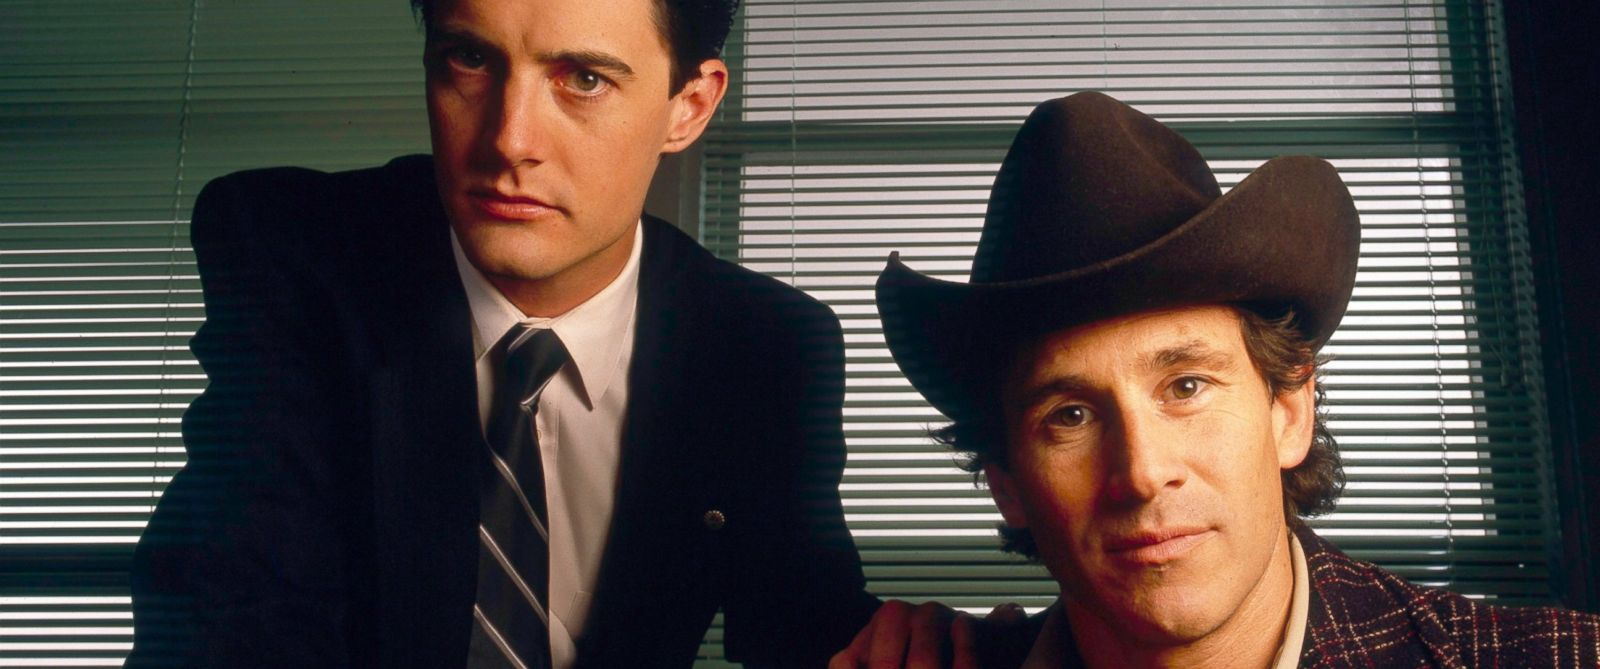 "Special Agent Dale Cooper (Kyle MacLachlan) und Sheriff Harry S. Truman (Michael Ontkean) aus ""Twin Peaks""."